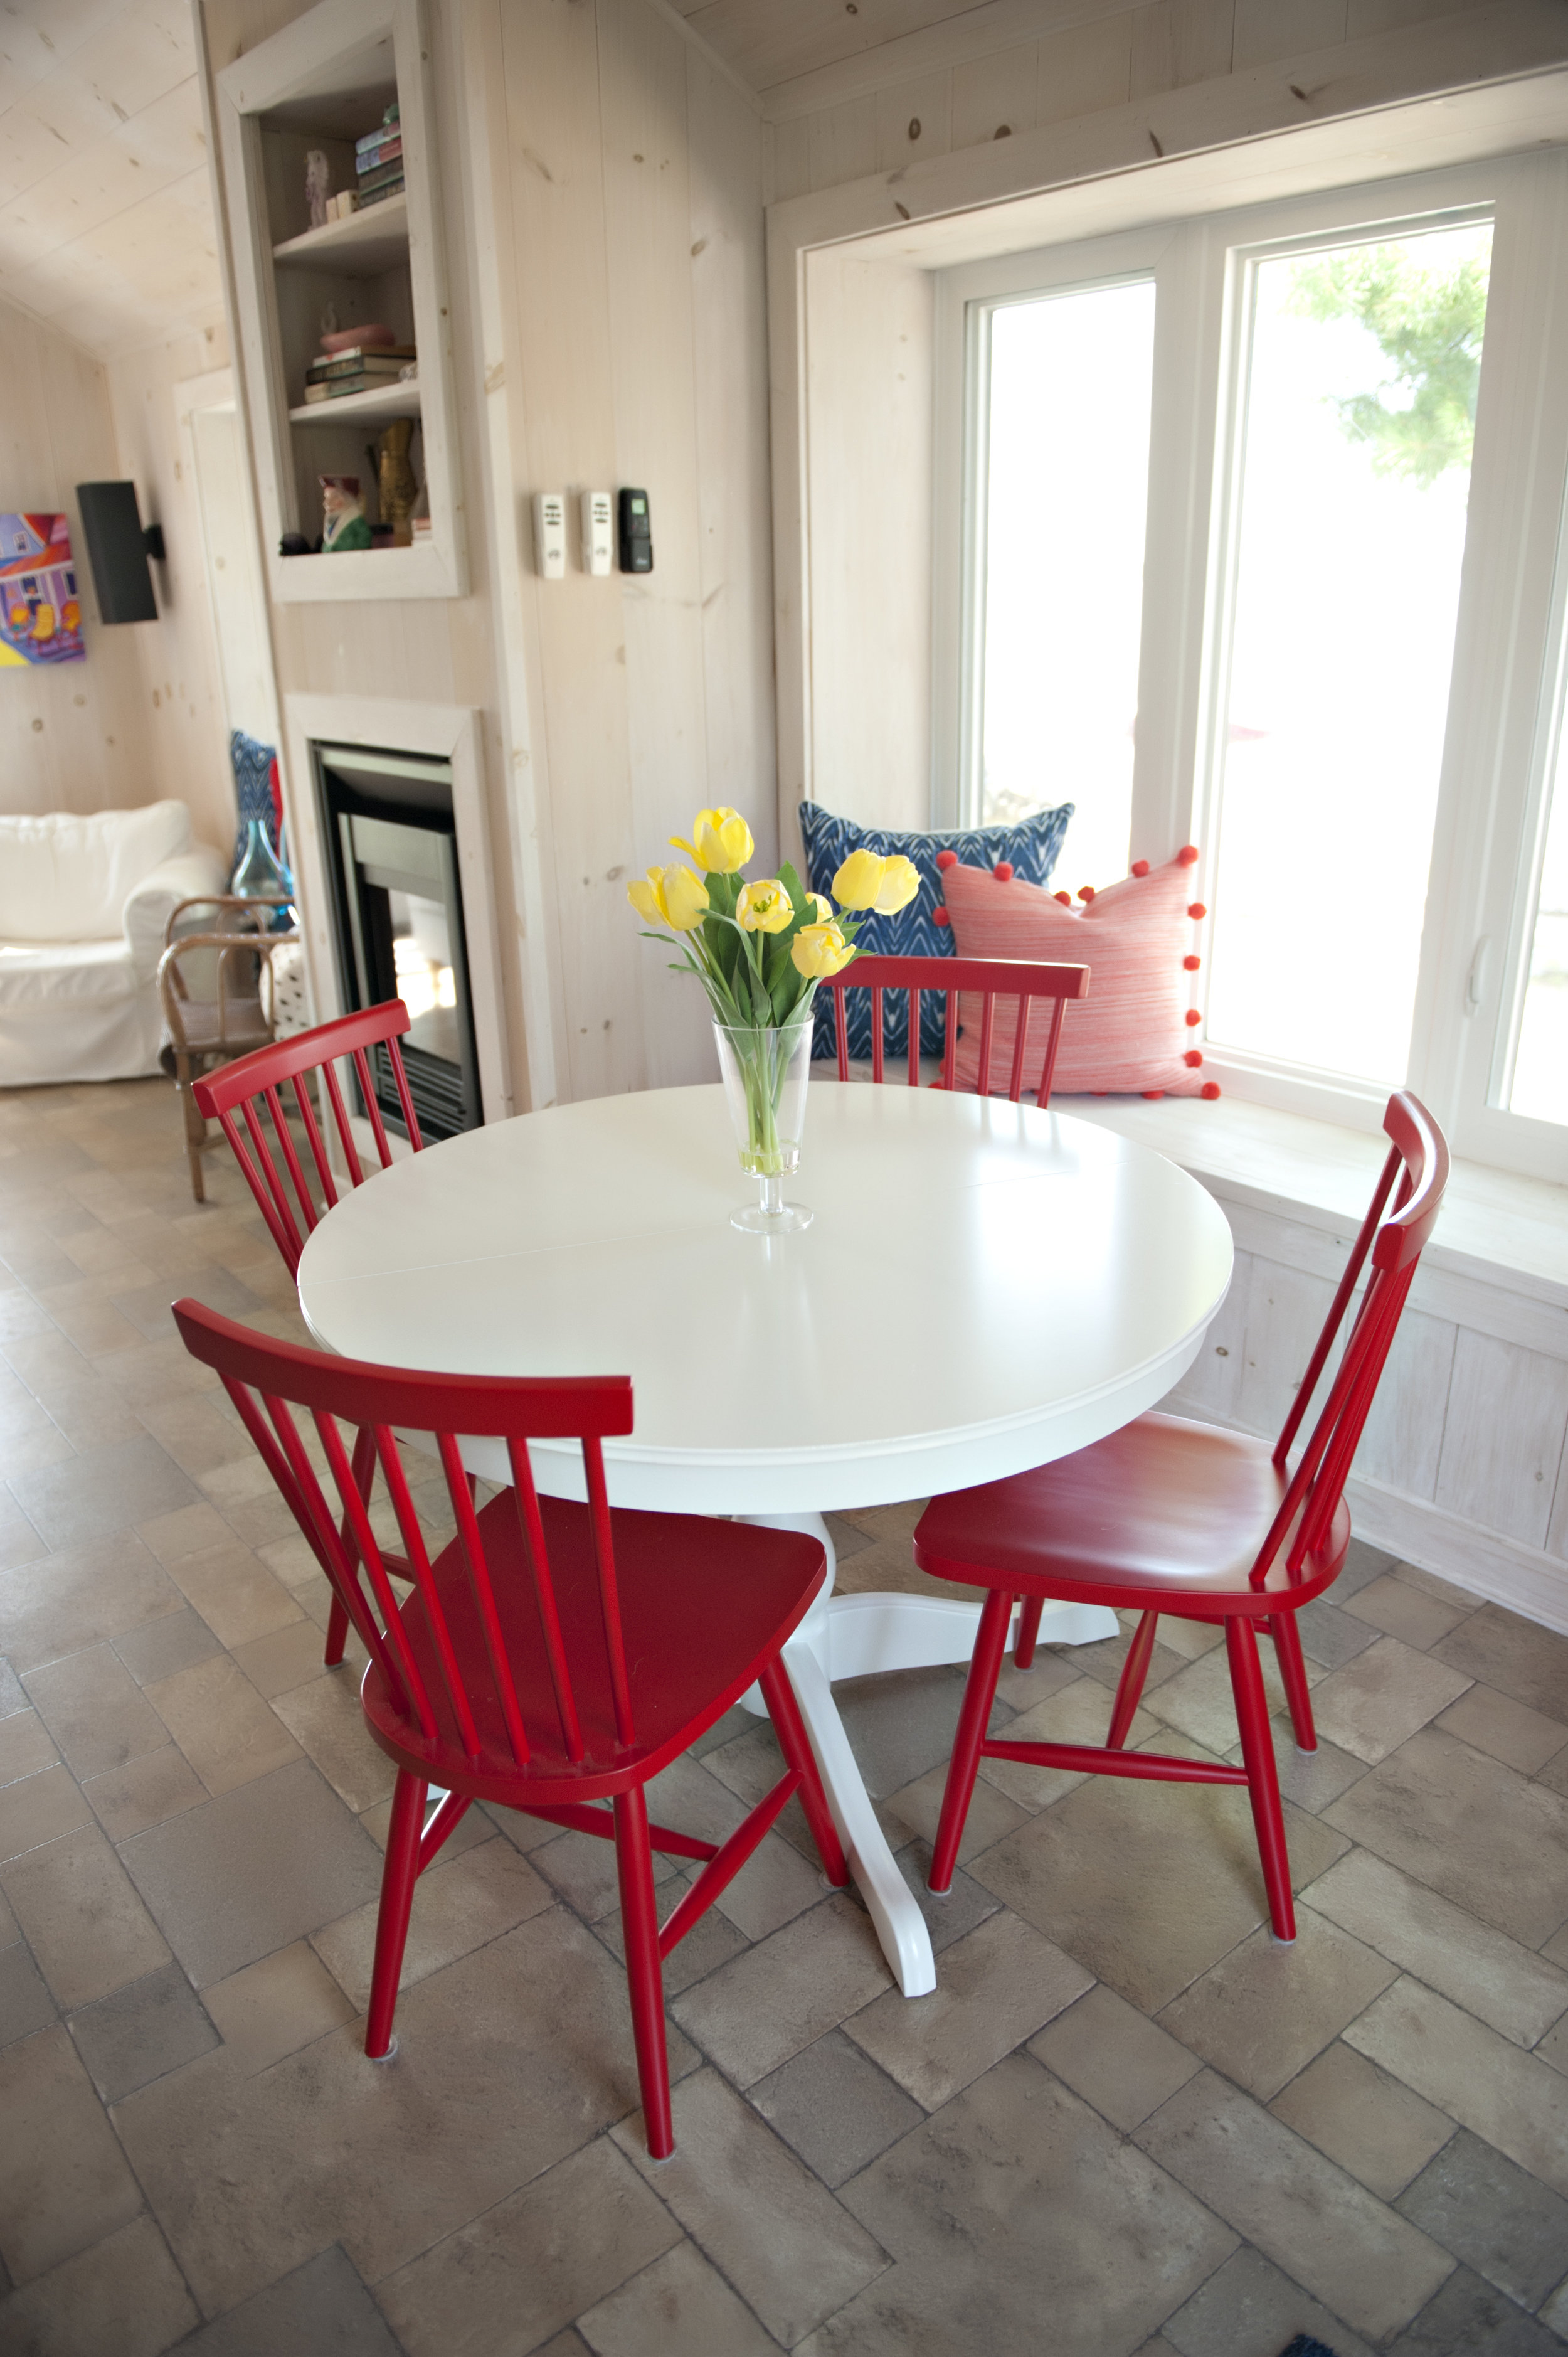 Candace-Plotz-Design-Beach-House-2-Red-Chairs-White-Table